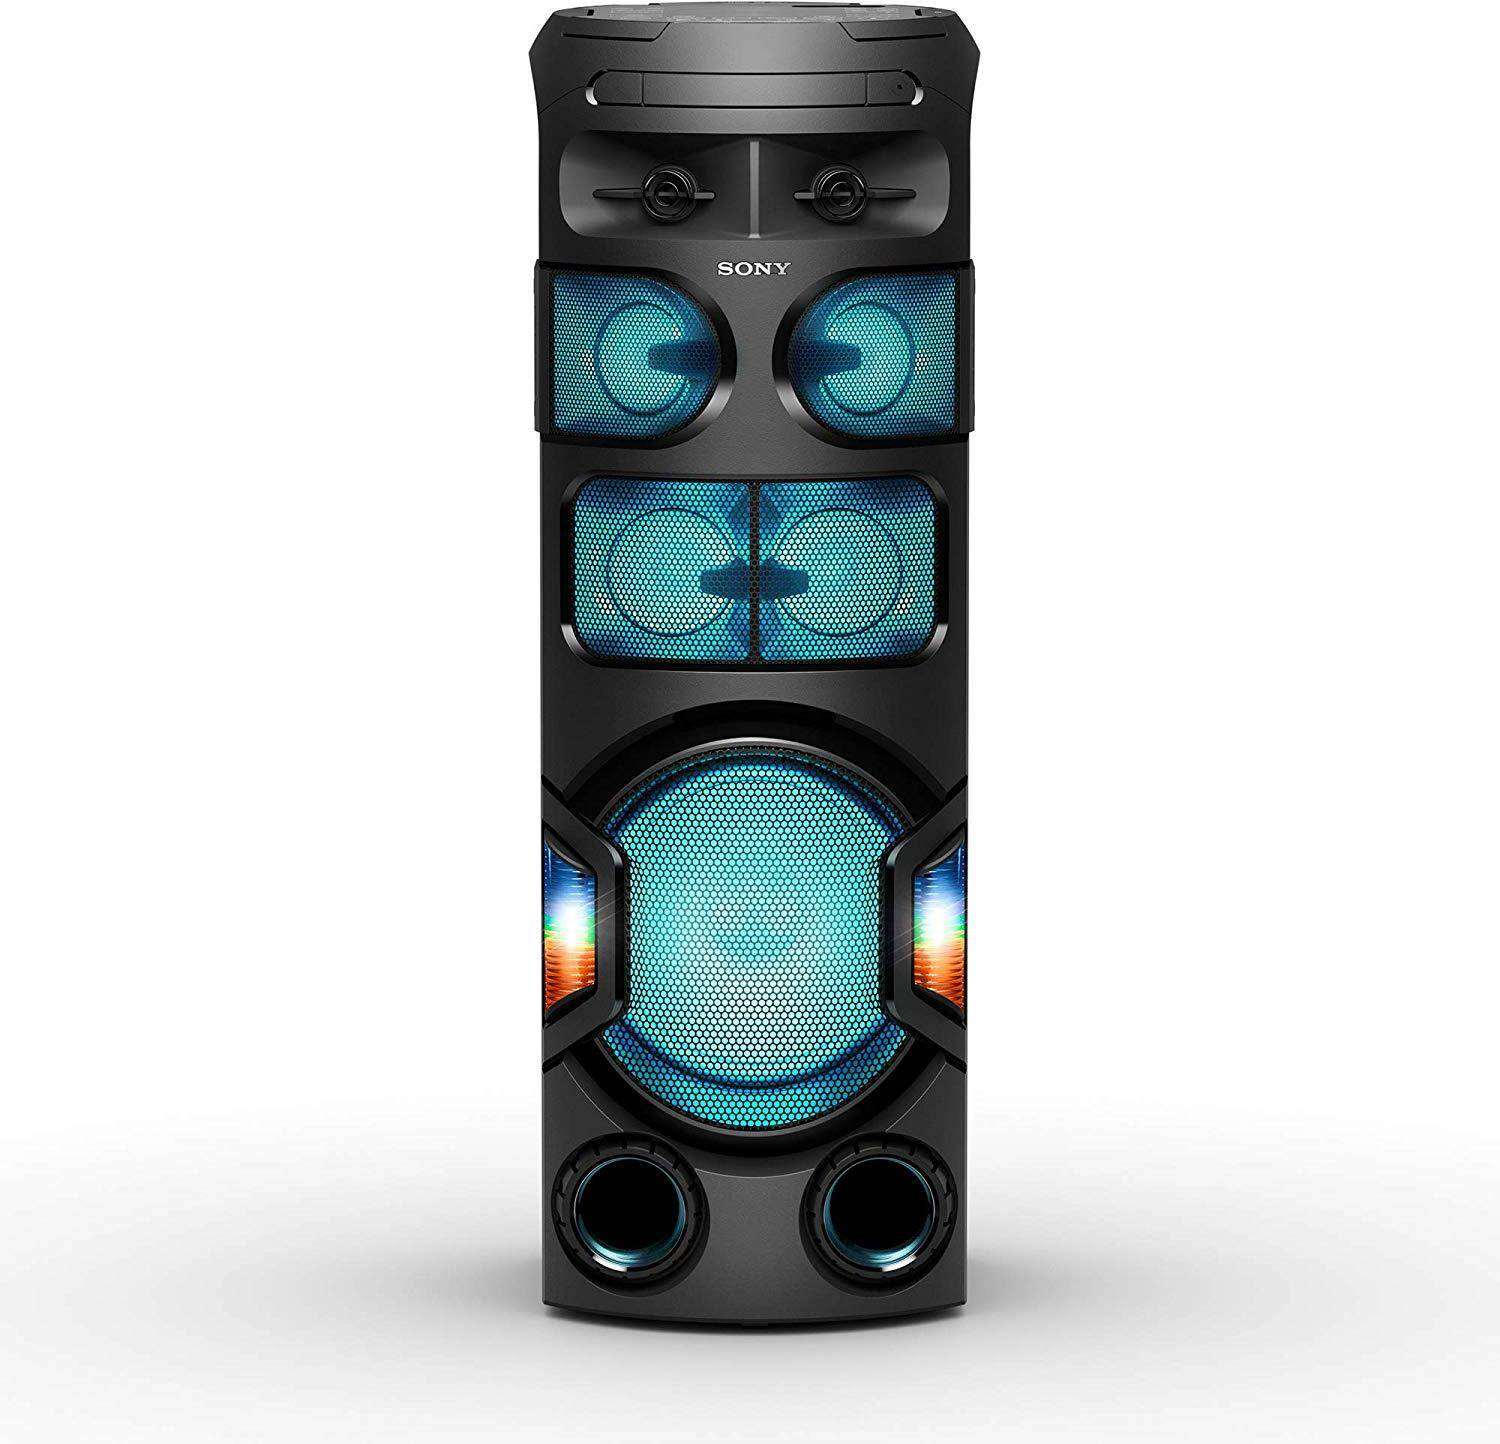 Sony MHC-V82D Powerful Party Speaker with 360 Degree and Long Distance Bass Sound zoom image